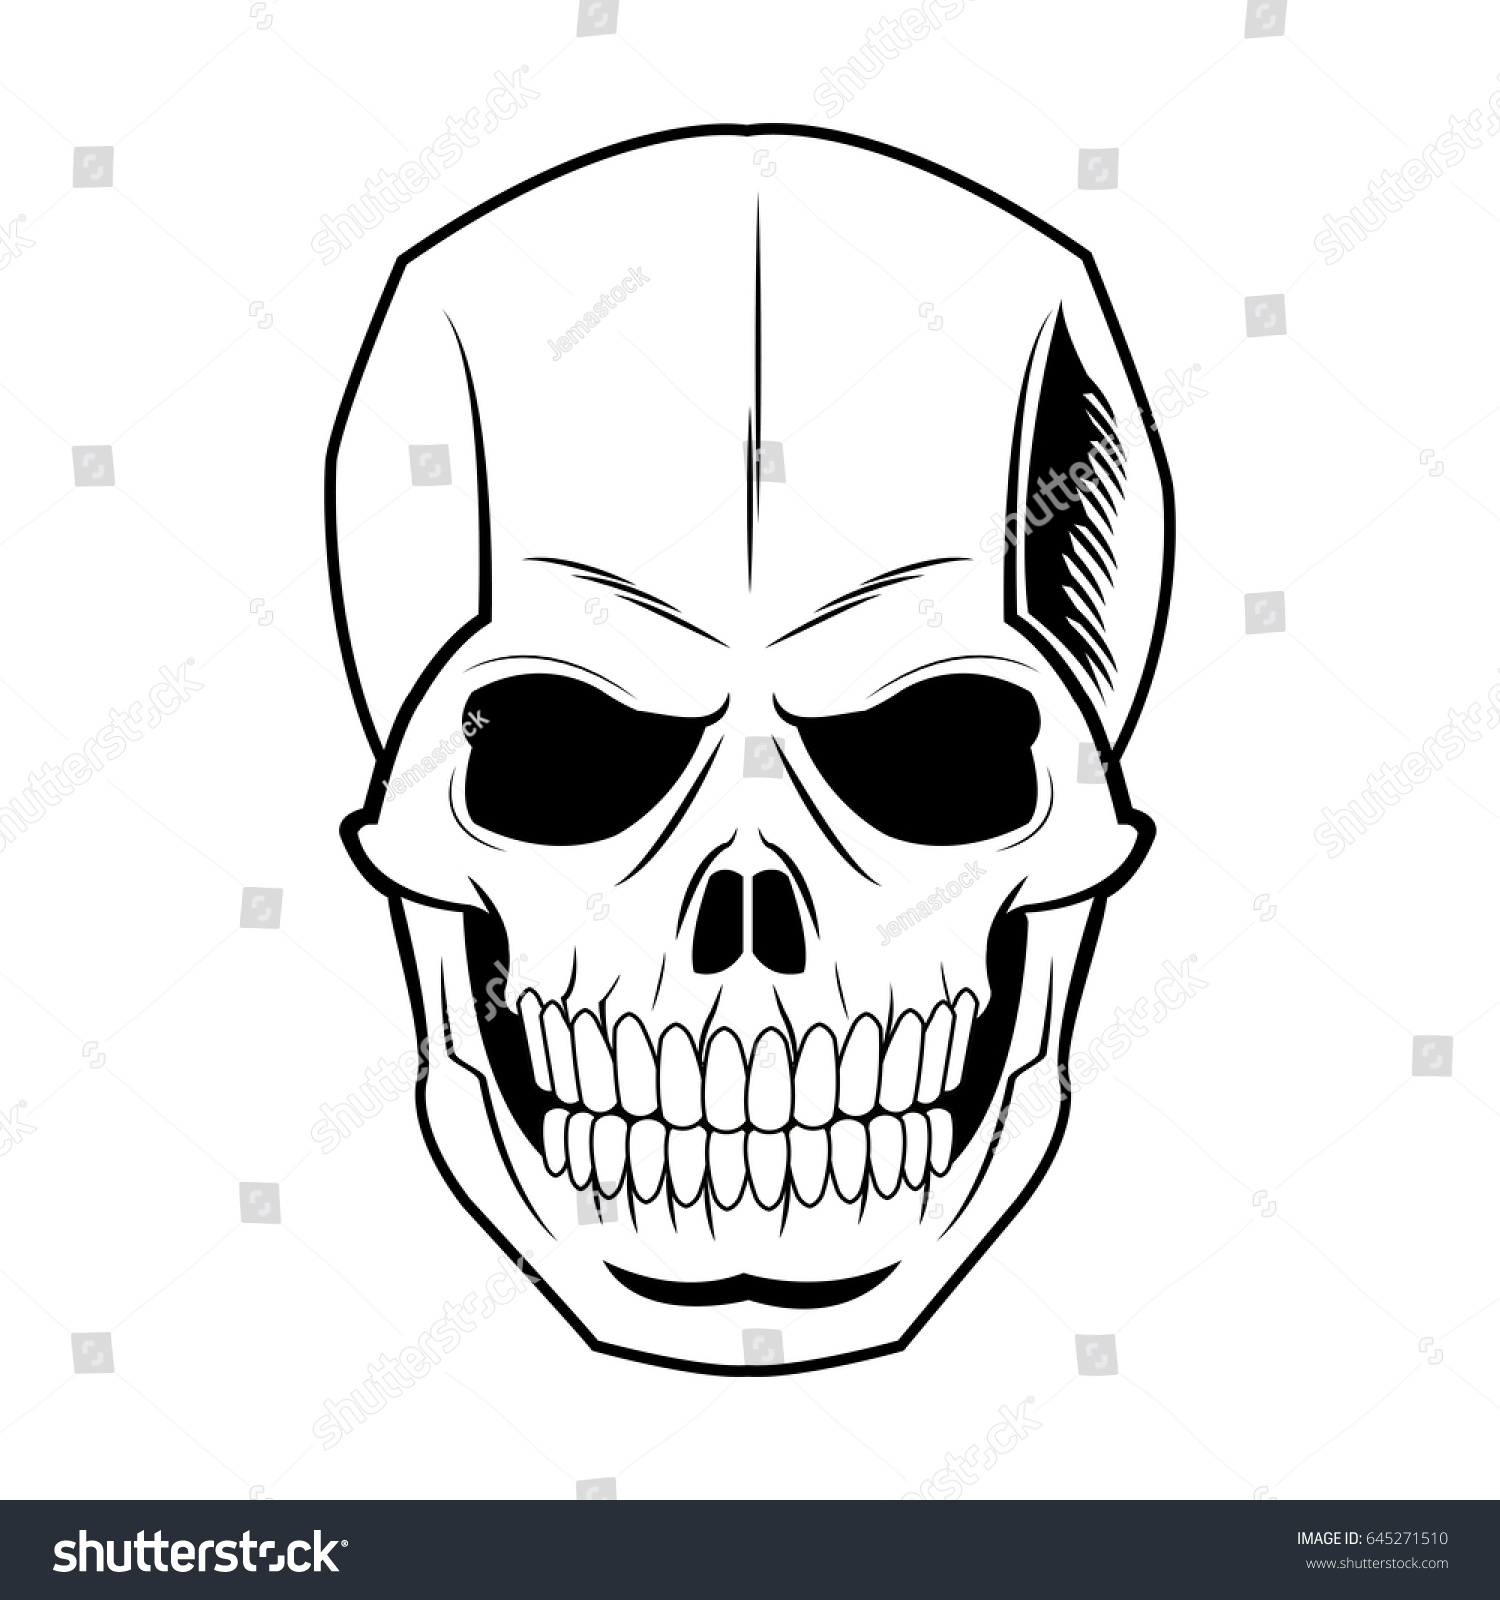 1500x1600 Head Skeleton Drawing How To Draw A Skull With Wings (Part 1 Of 2